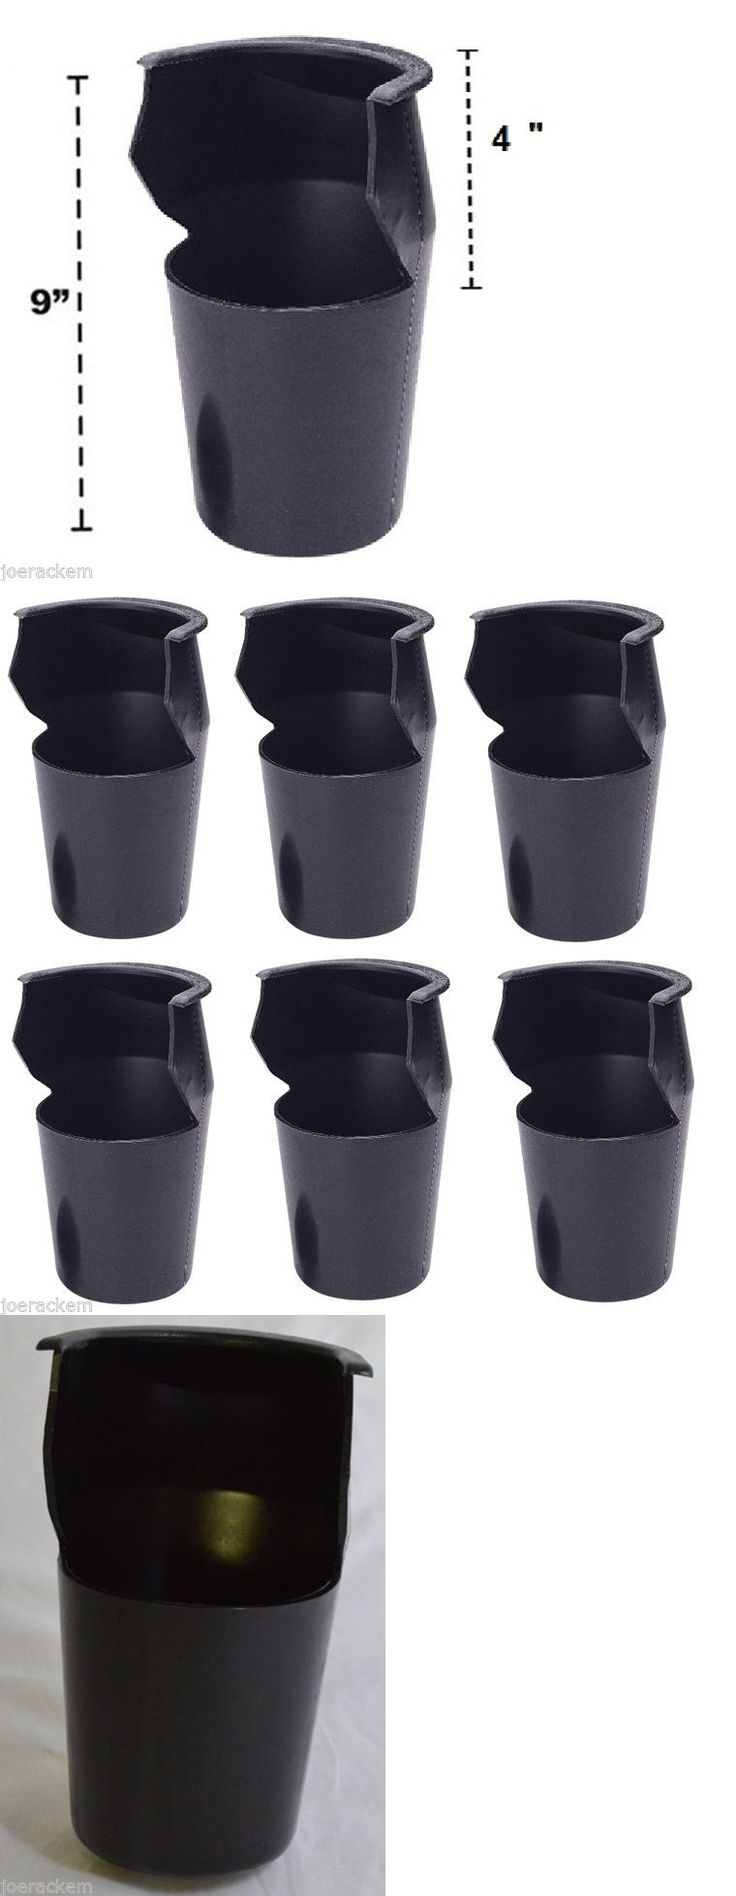 Tables 21213: Black Molded Pockets - Set Of 6 Pool Table Pockets - Poly-Vinyl - Free Us Ship BUY IT NOW ONLY: $57.99